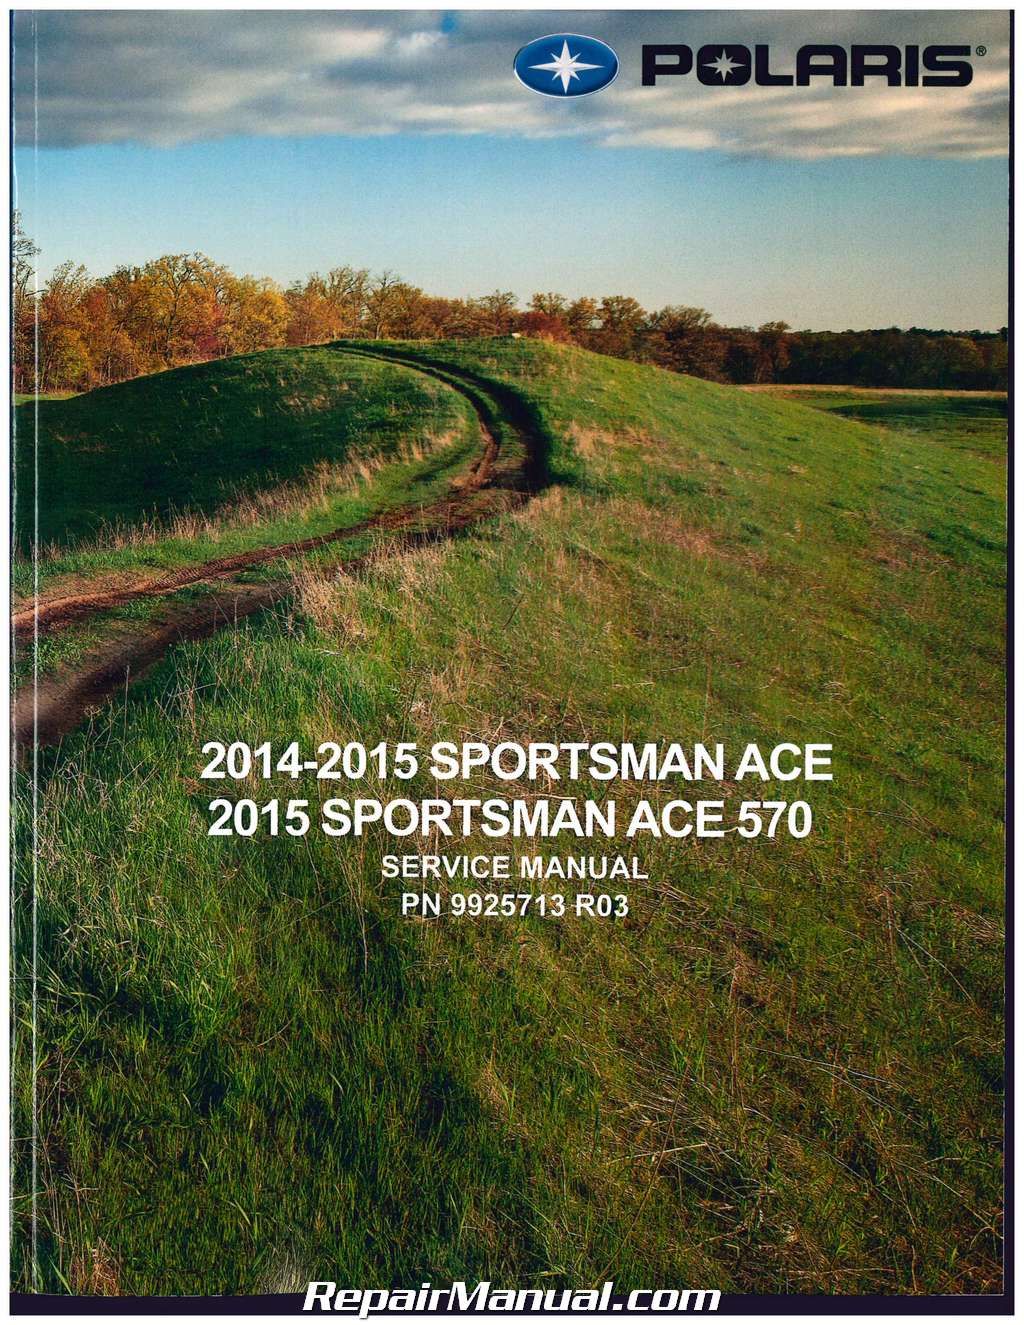 2014 2015 Polaris Sportsman Ace 570 Atv Service Manual Wiring Diagram In Addition Winch As Well